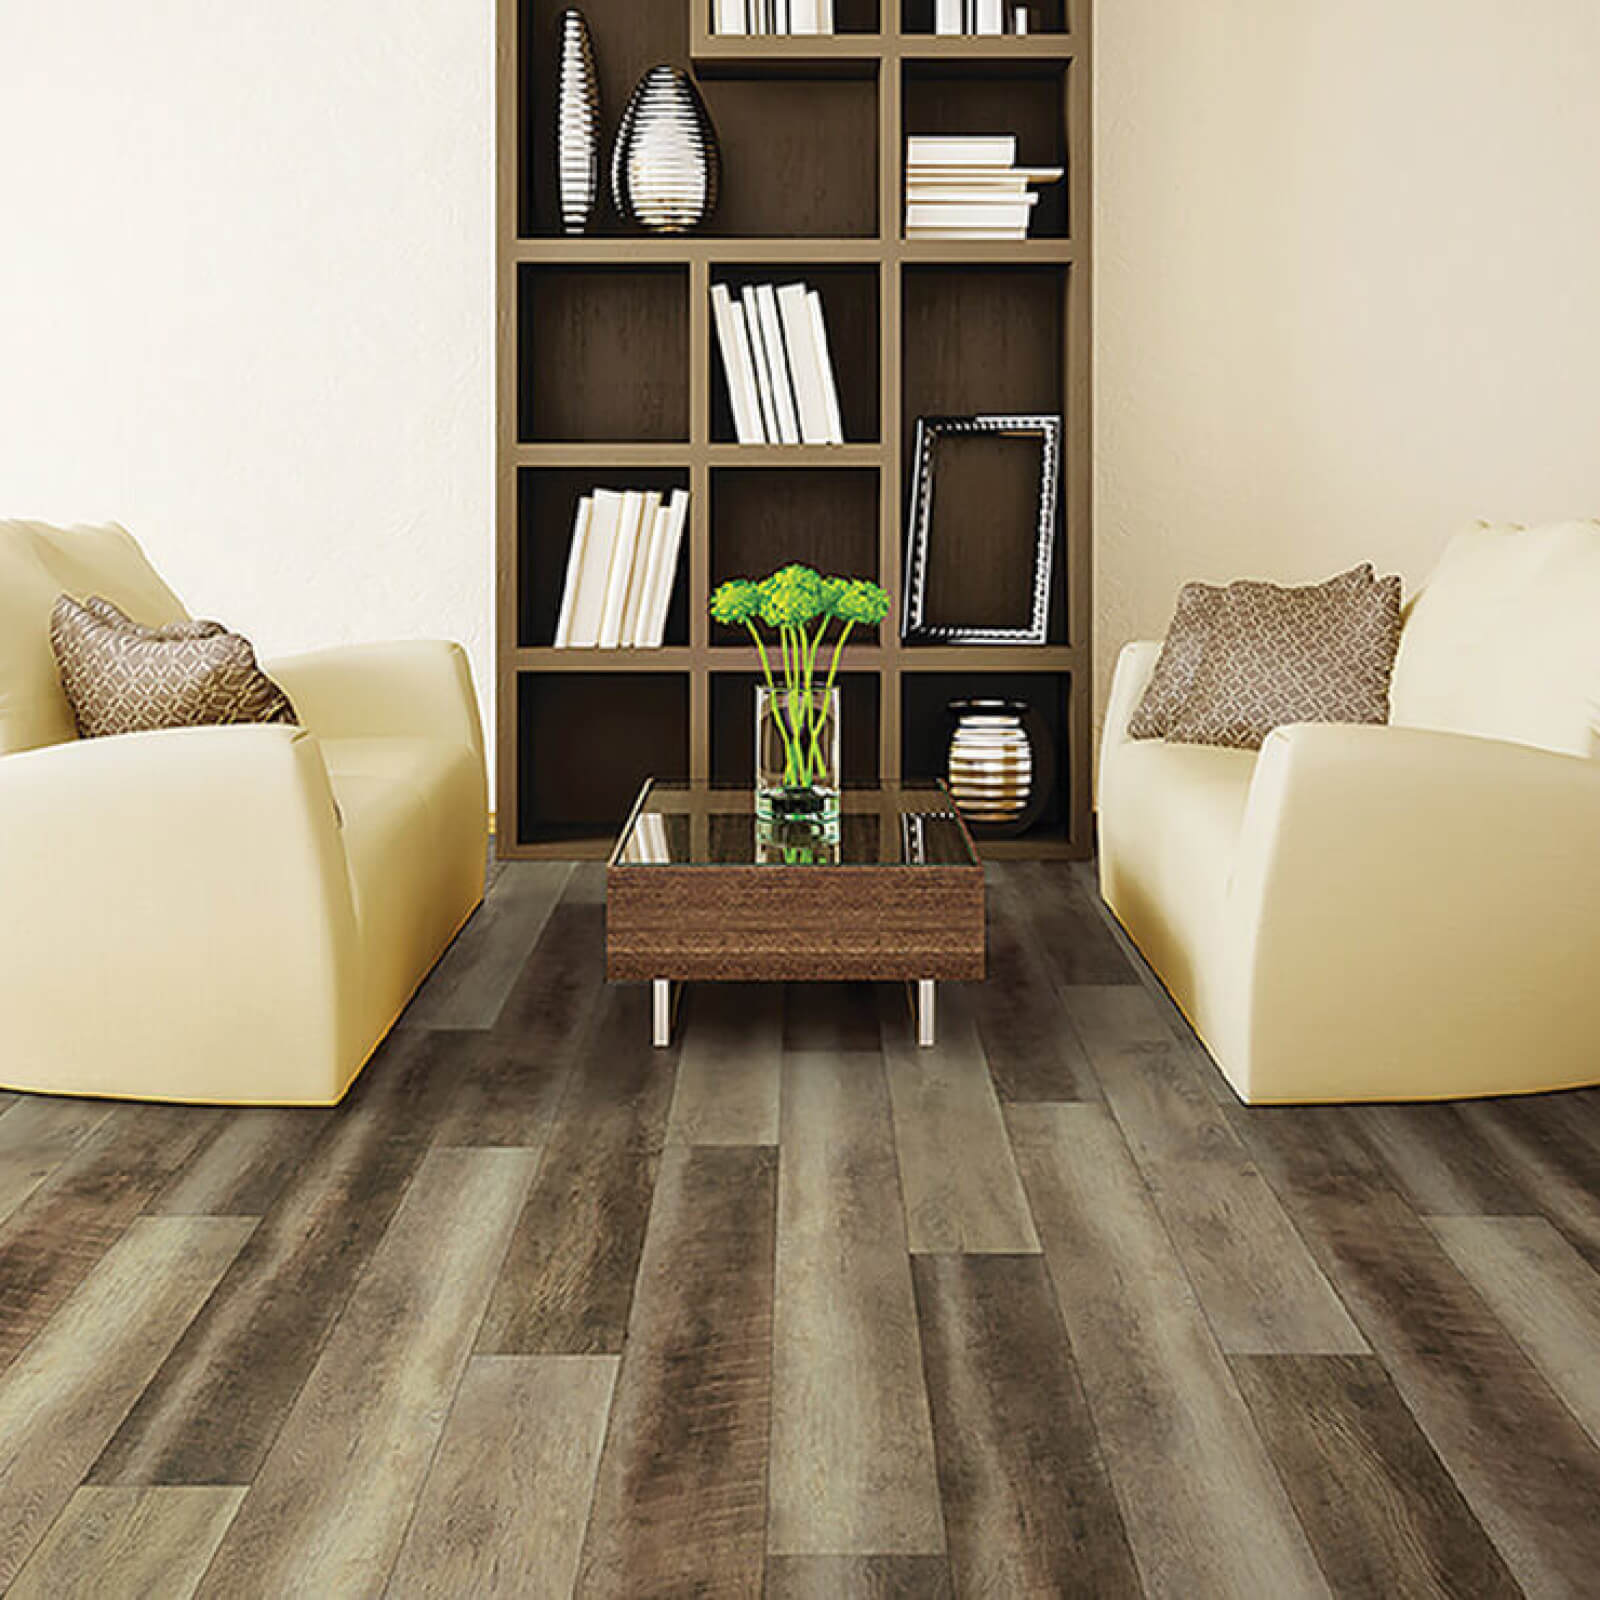 Coretec luxury vinyl plank | West Michigan Carpet Center